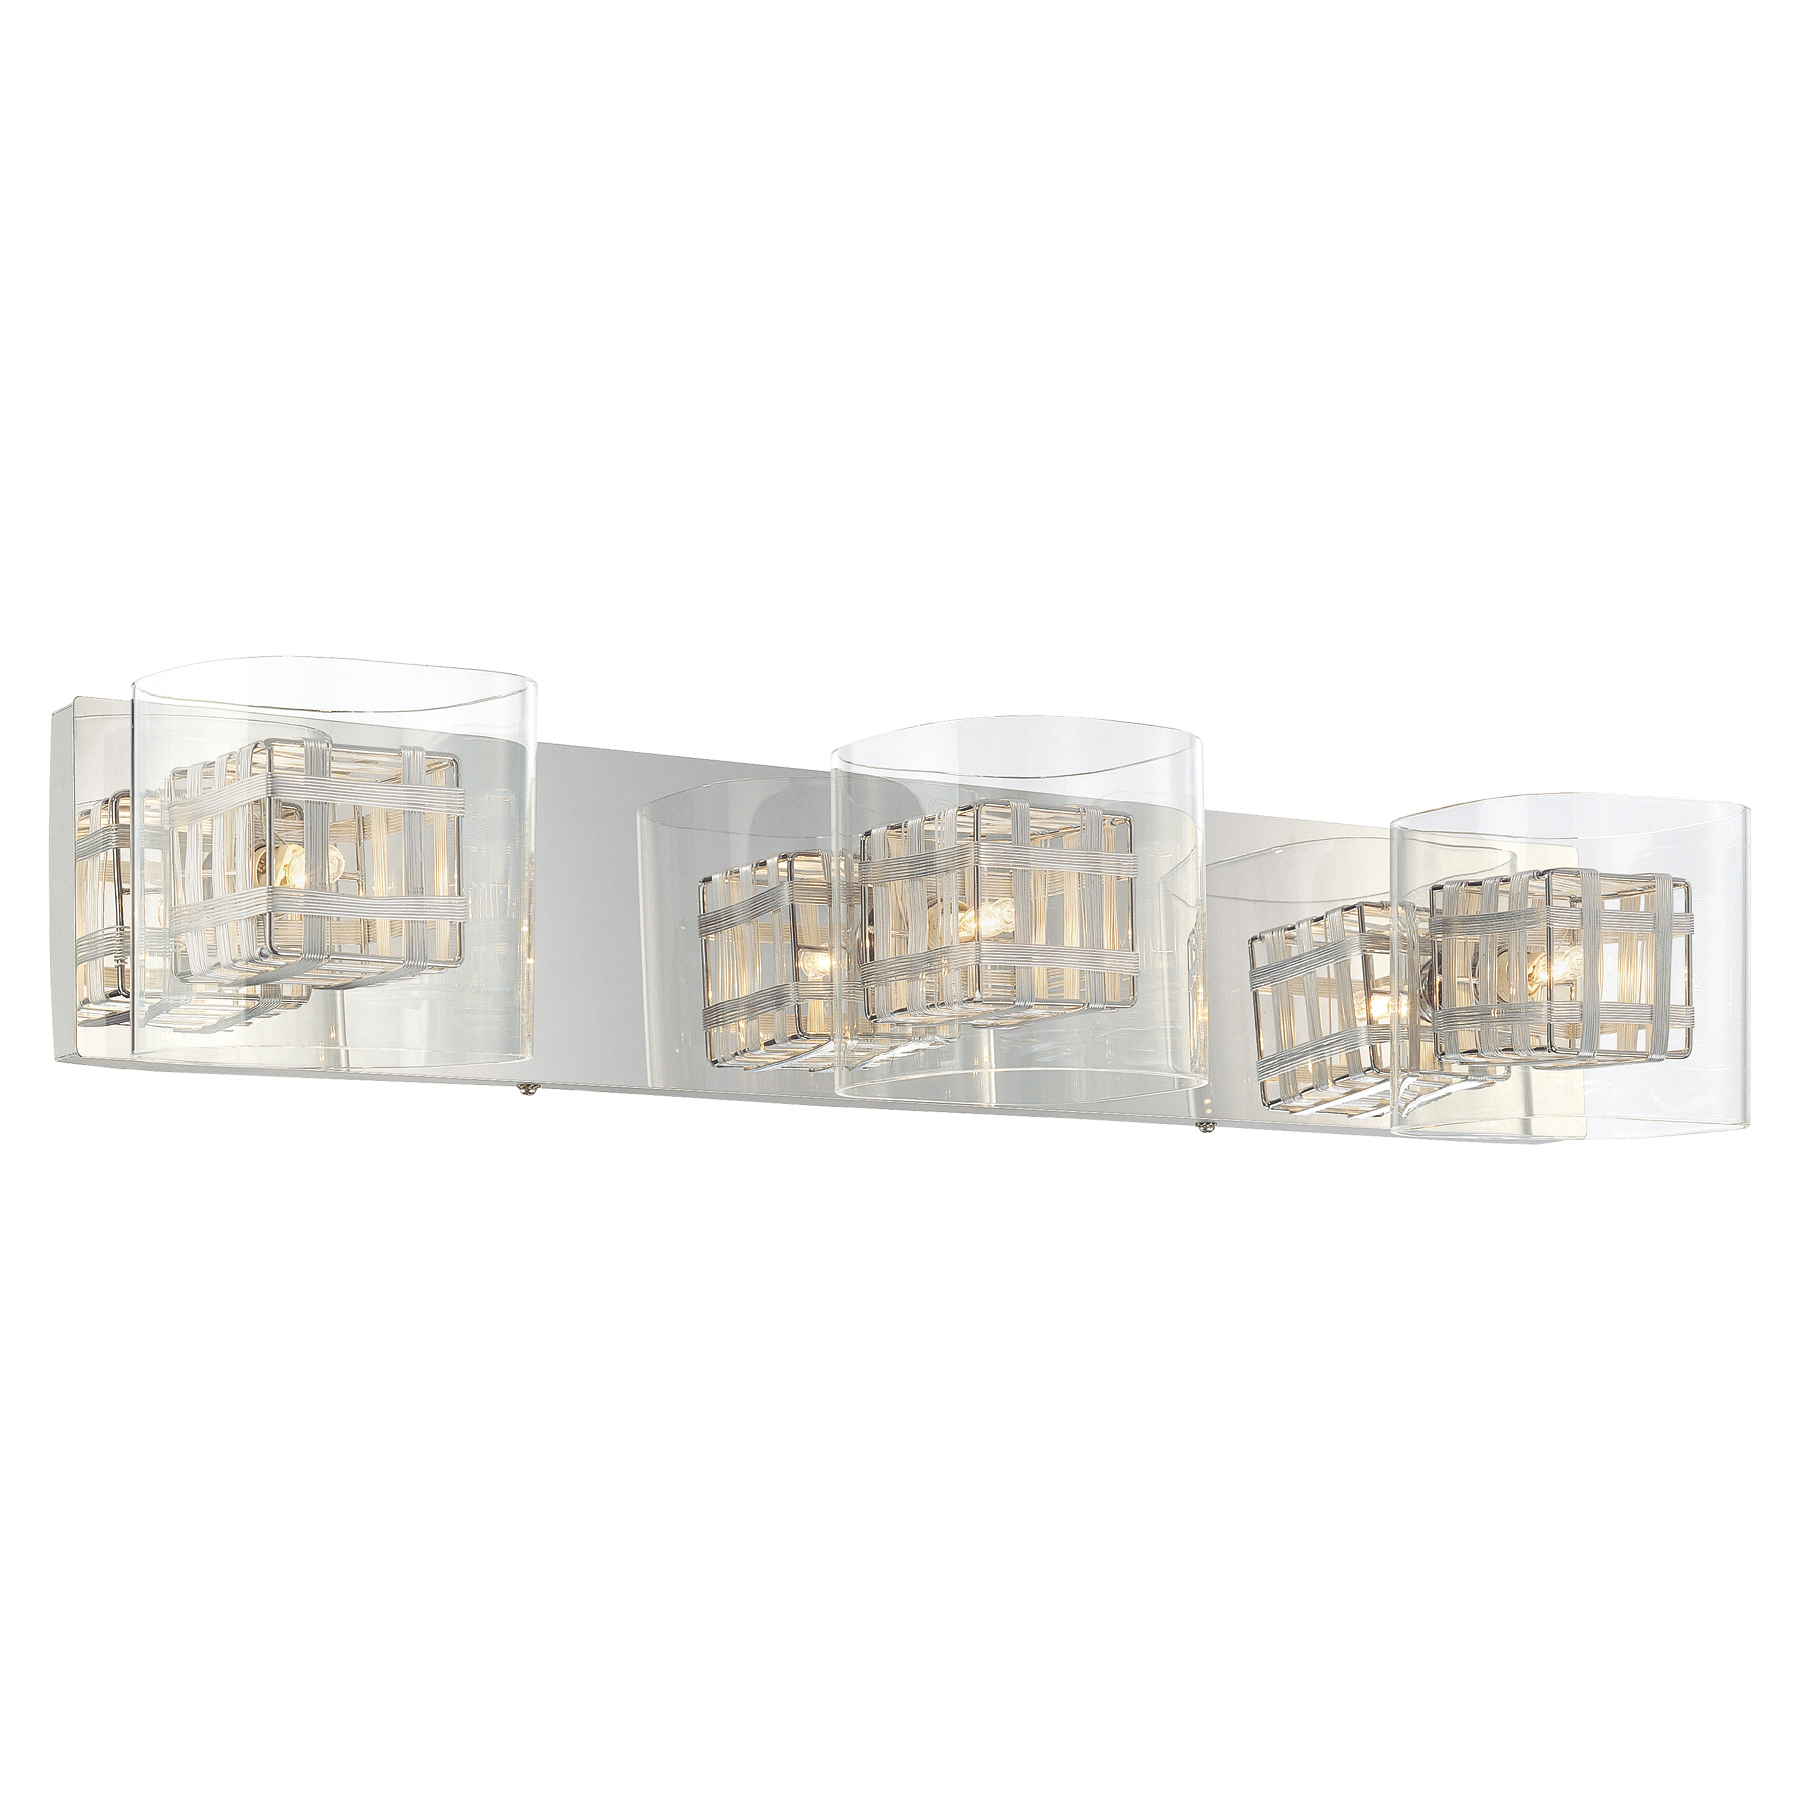 Tube Vanity Wall Sconce Jewel Box Bath Bar